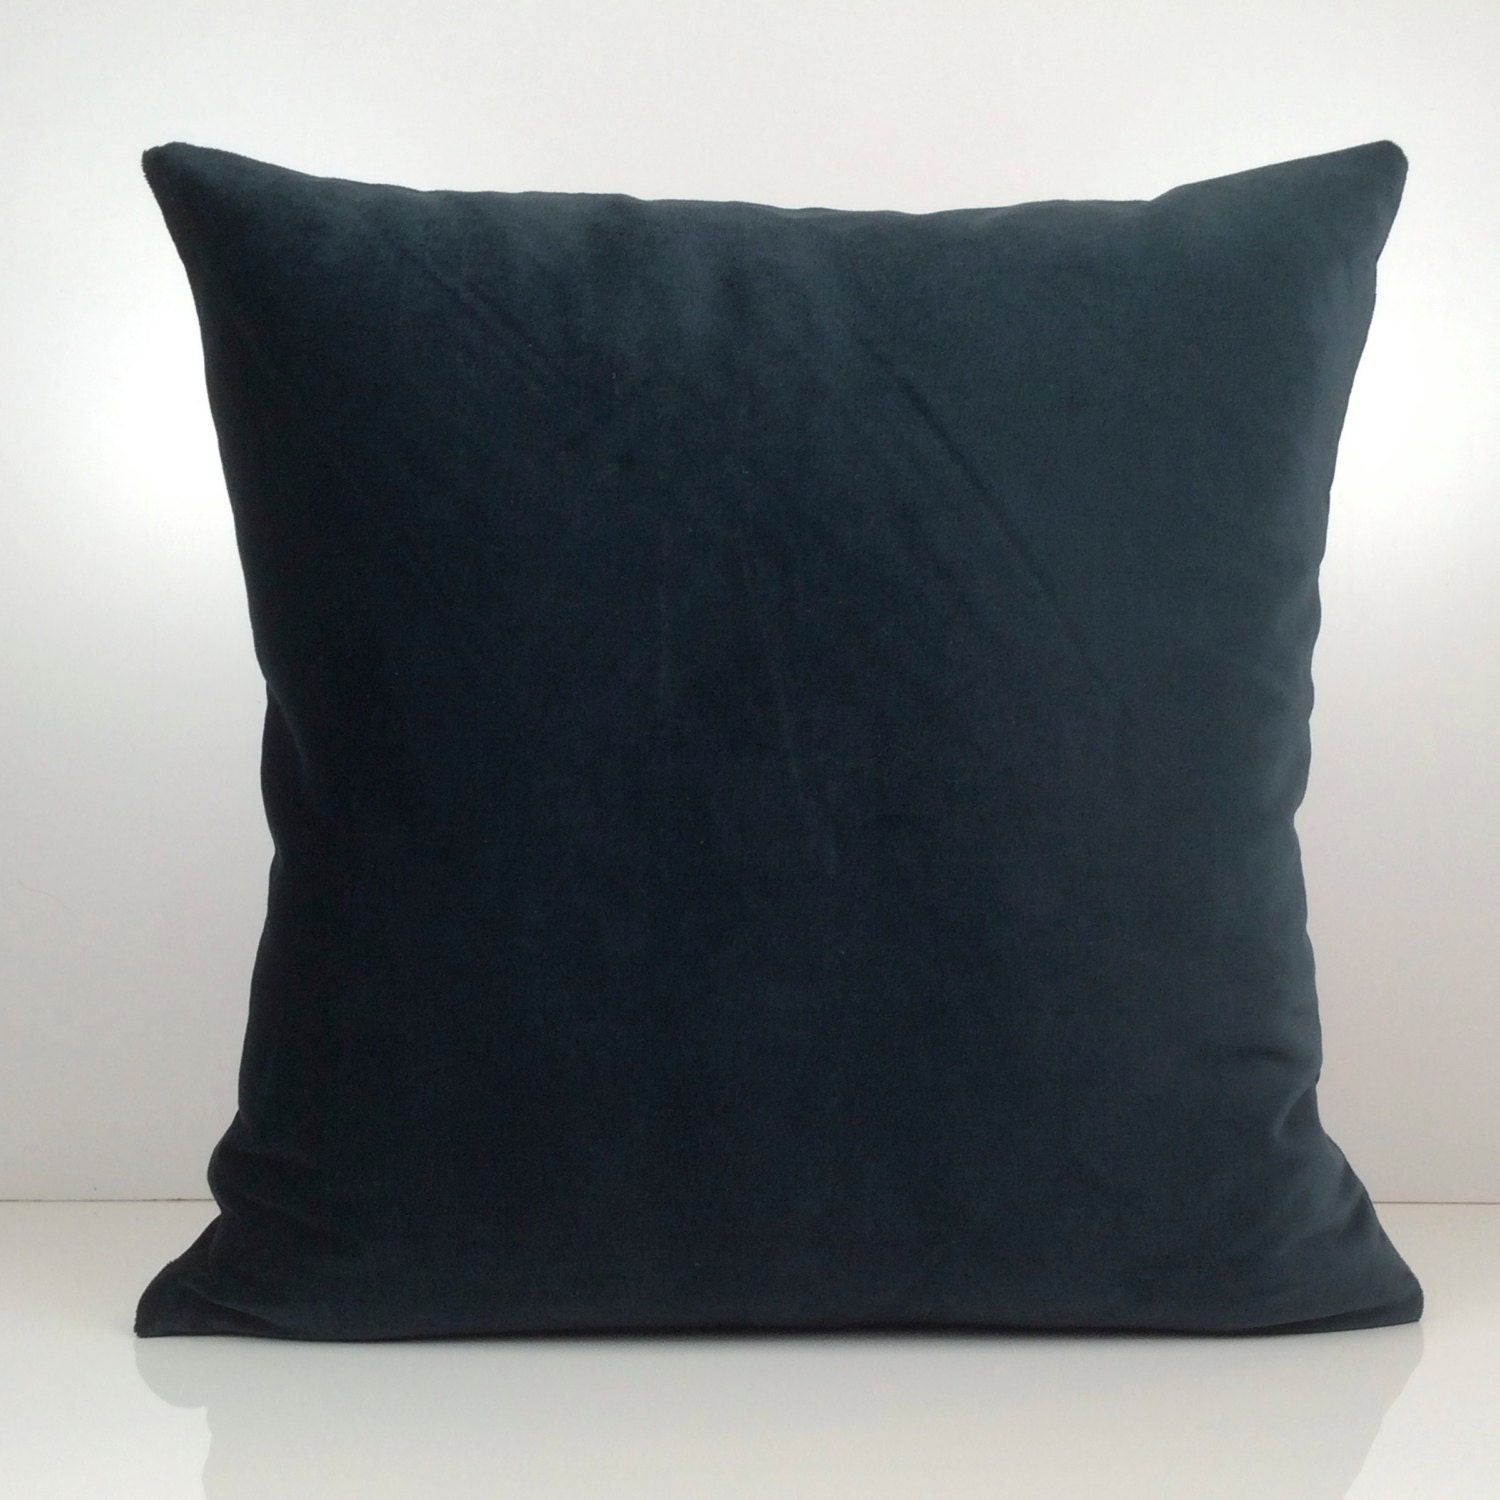 Decorative Pillows With Teal : Dark Teal Pillow Throw Pillow Cover Decorative Pillow Cover